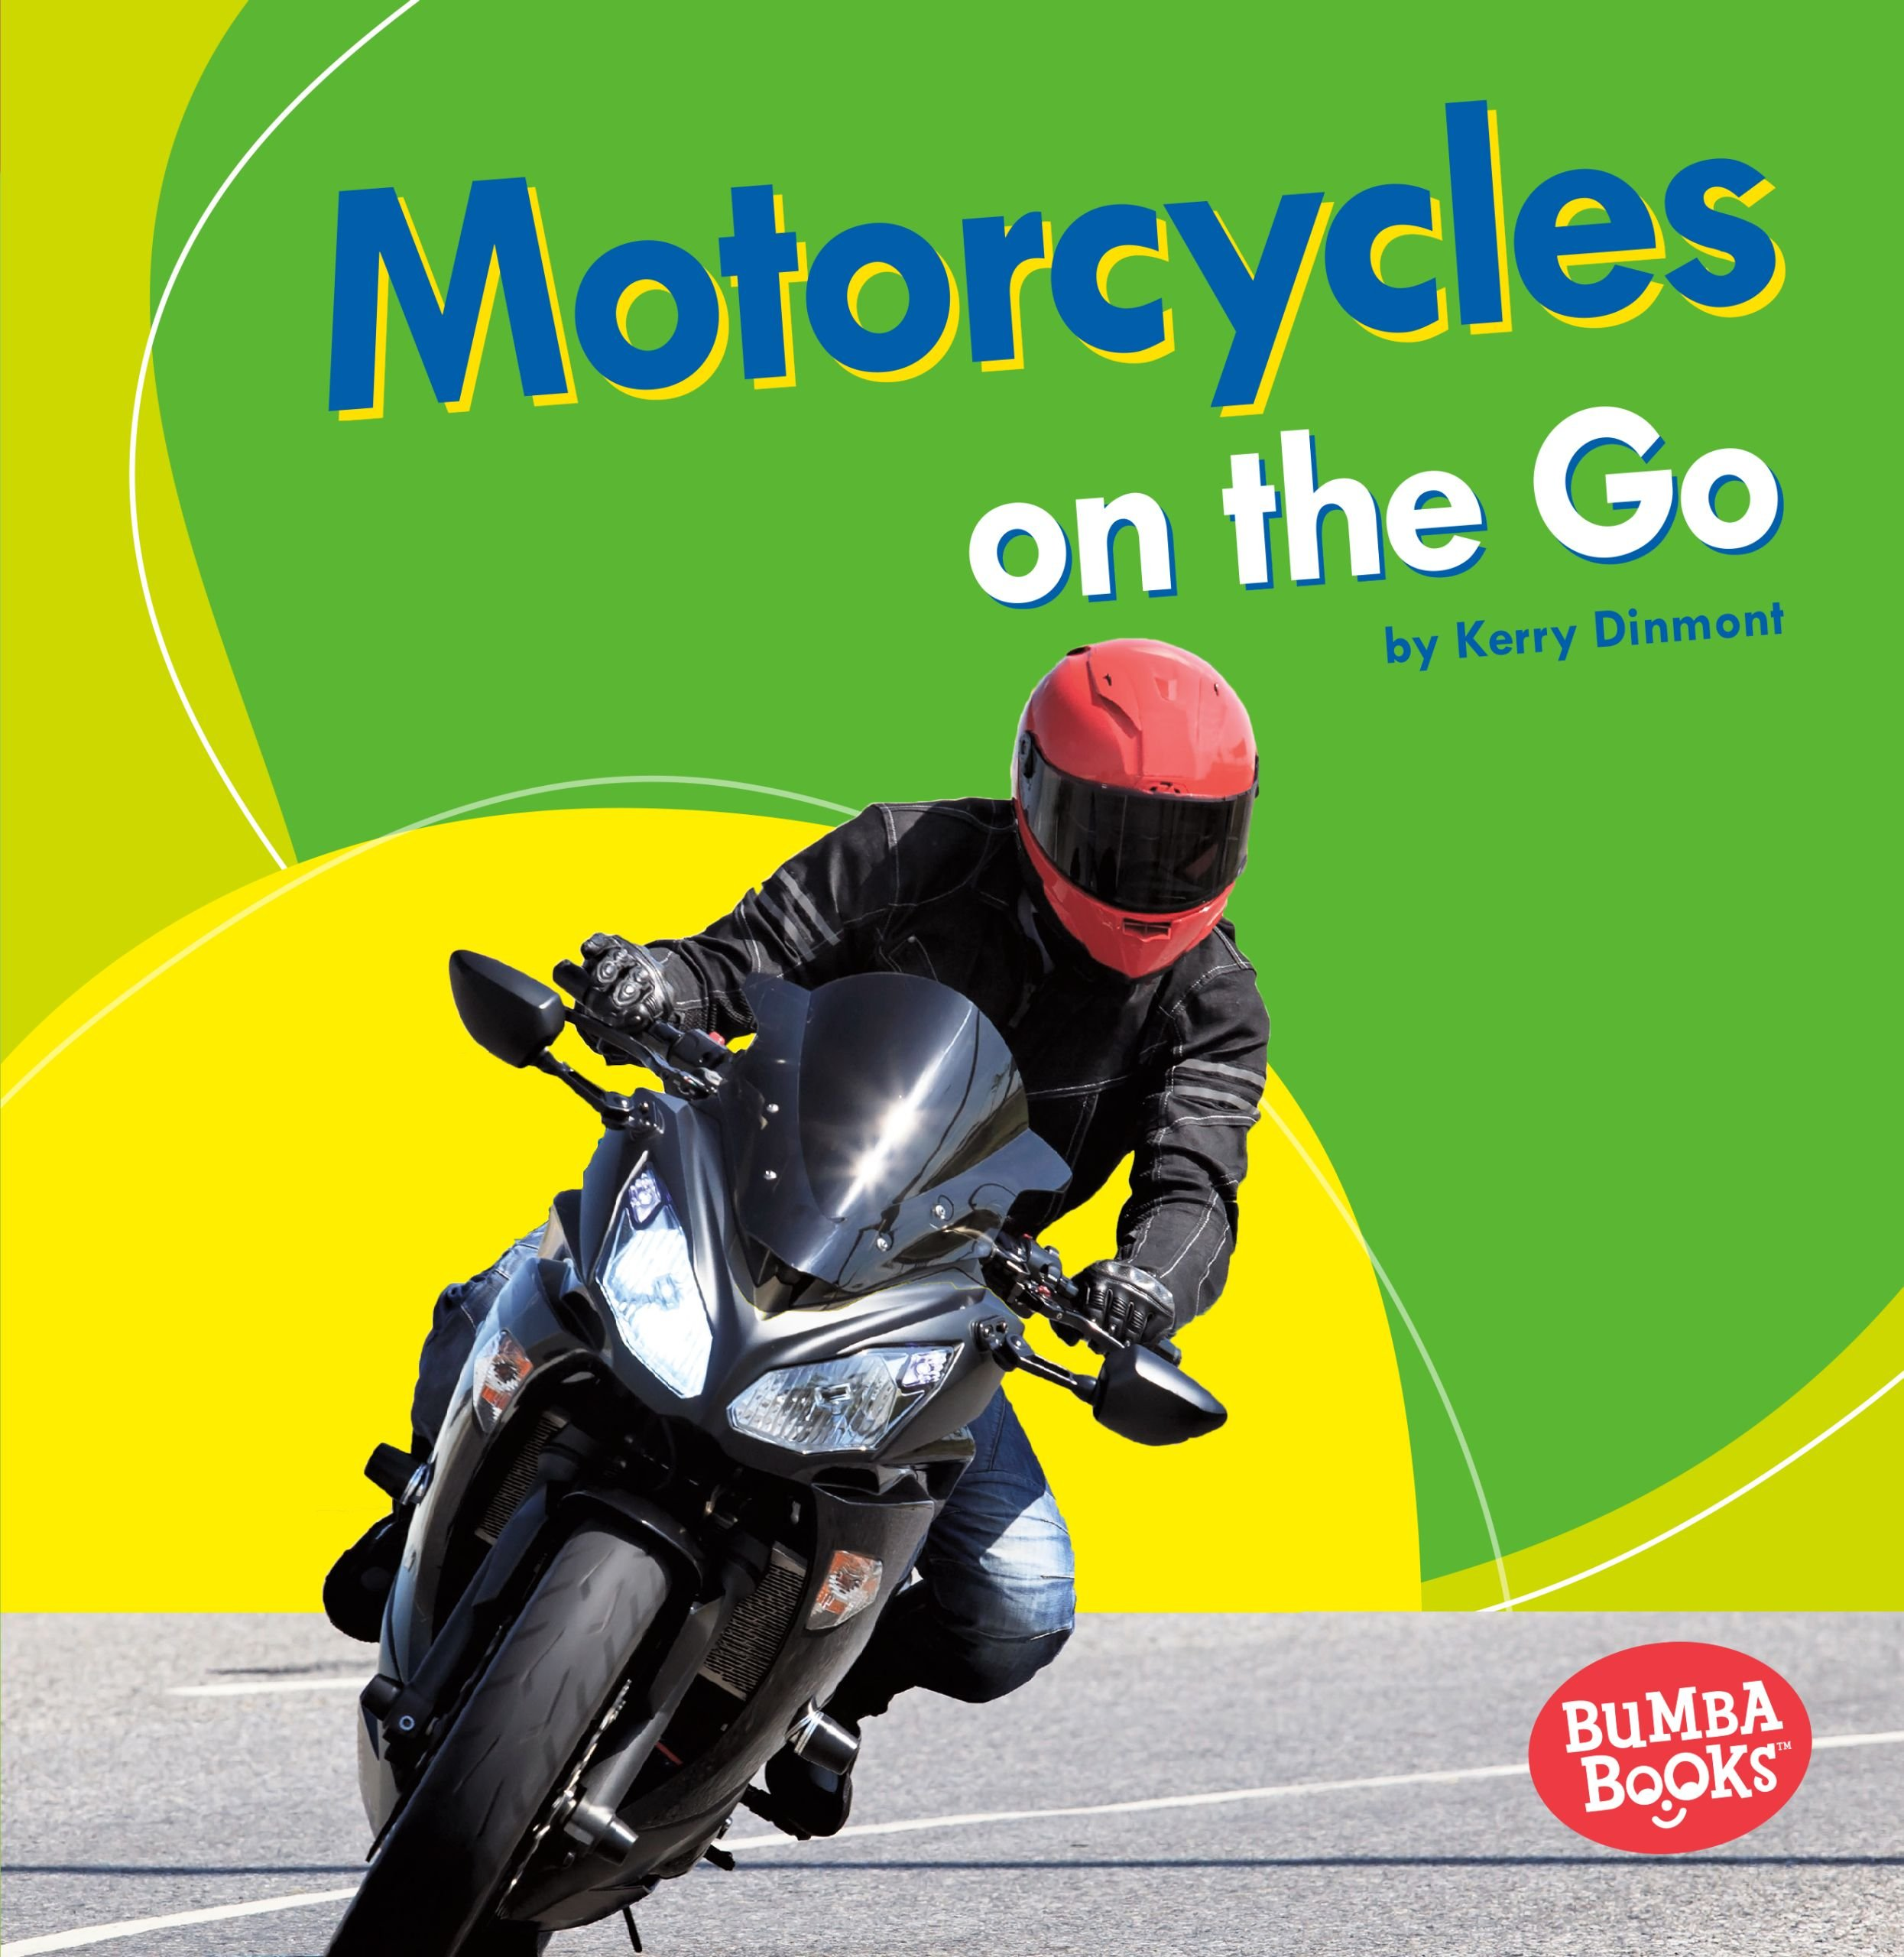 Motorcycles on the Go (Bumba Books: Machines That Go)